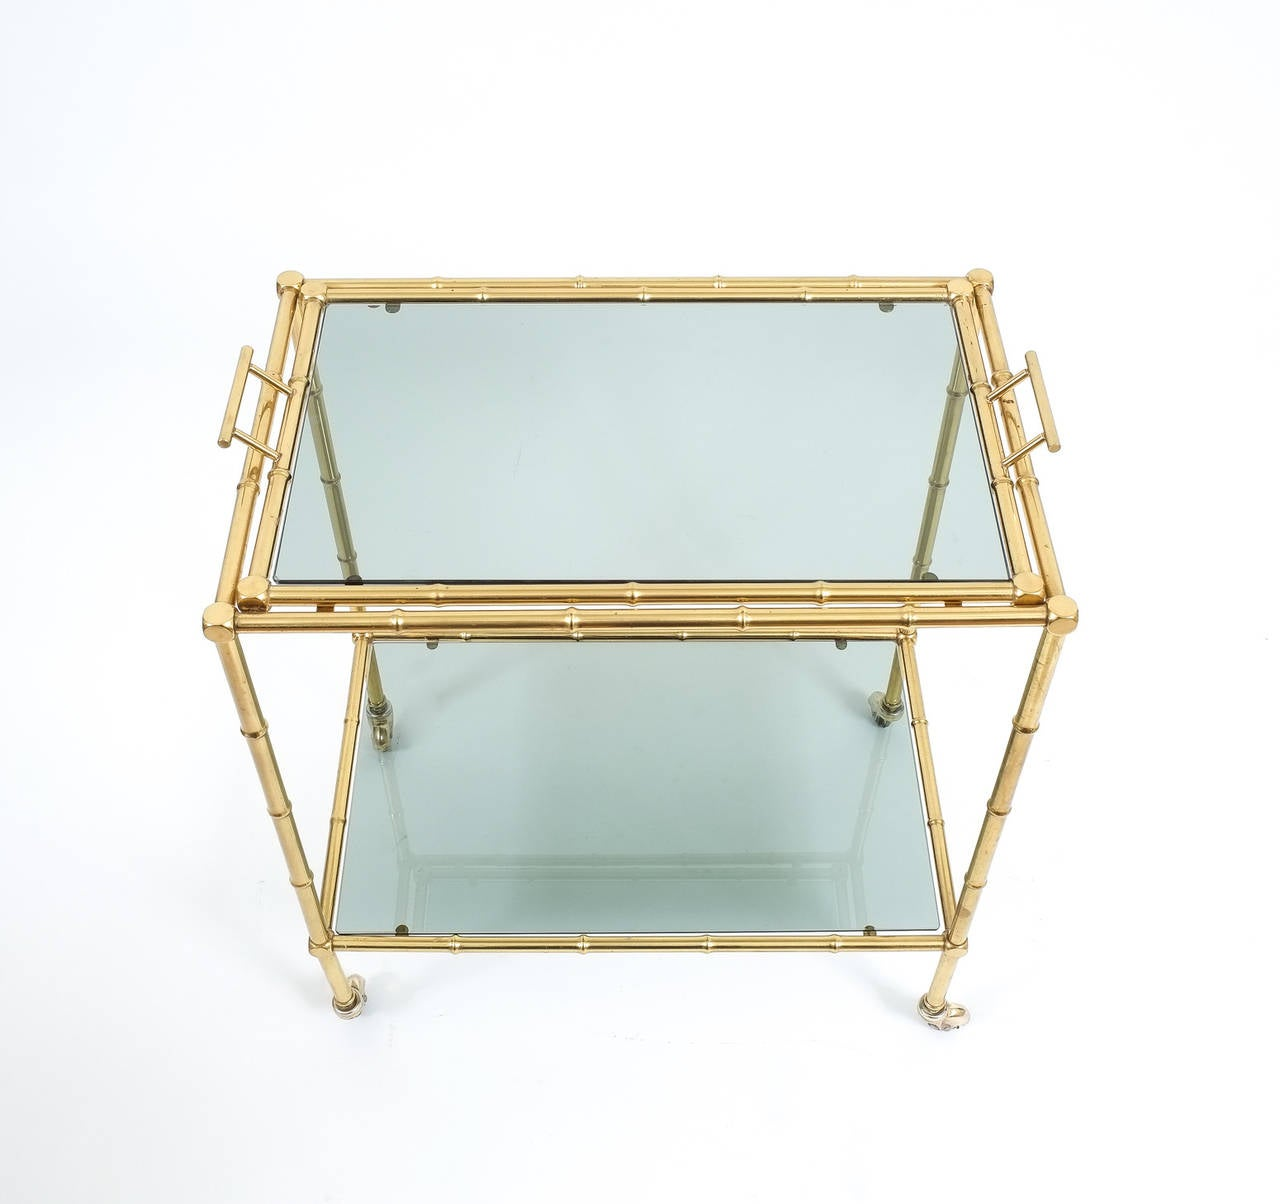 Faux Bamboo Brass Bar Cart with Removable Glass Tray For Sale at 1stdibs